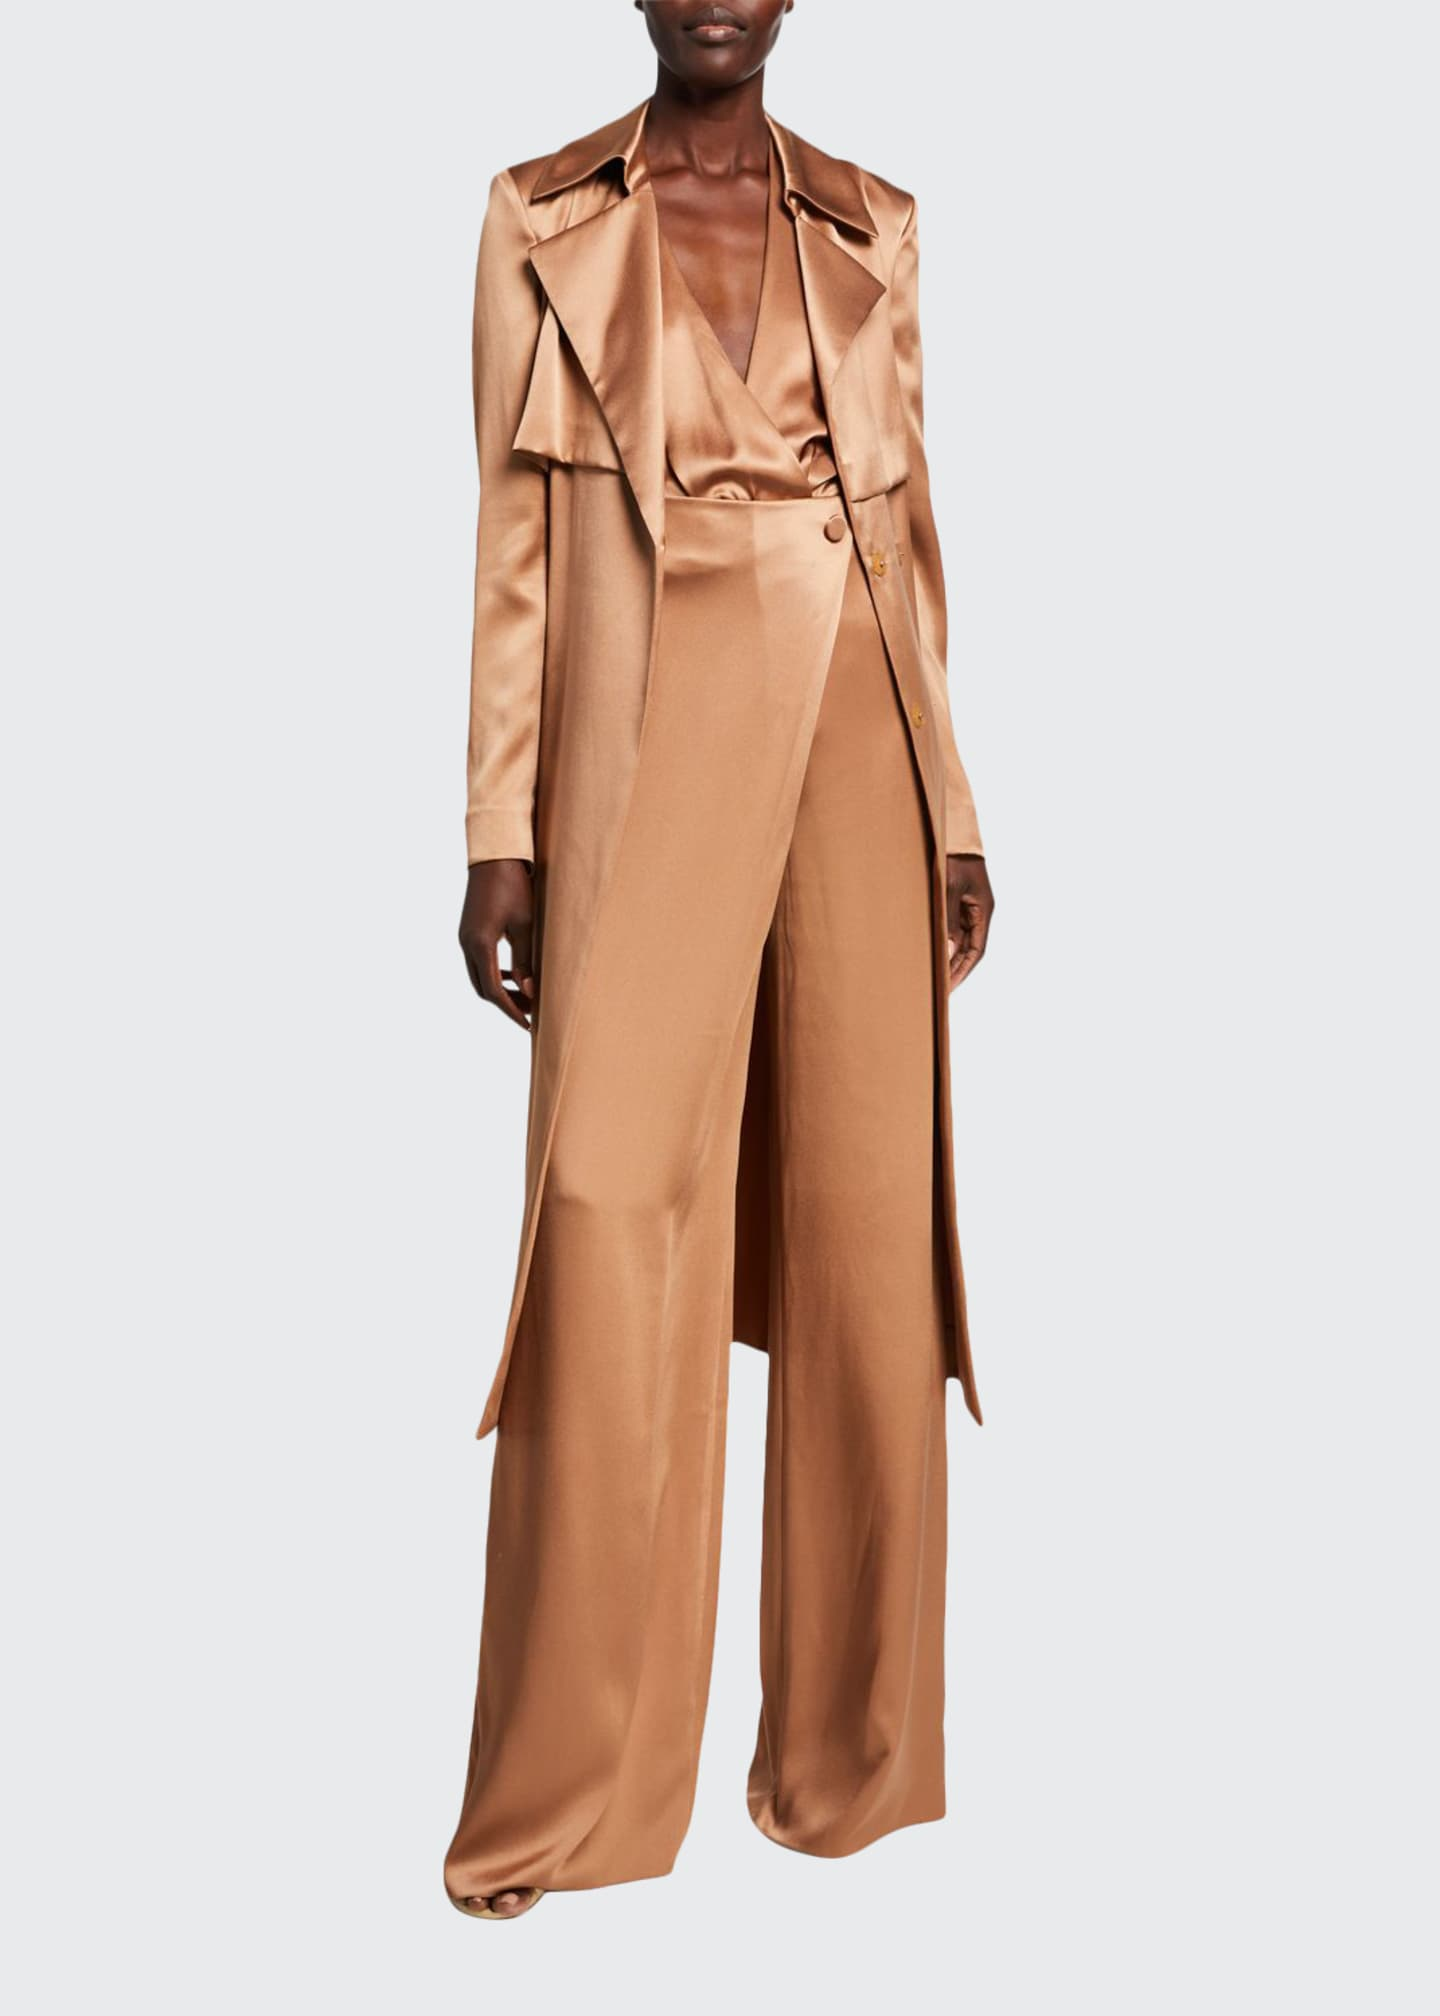 CUSHNIE Double-Charmeuse Asymmetric Trench Coat